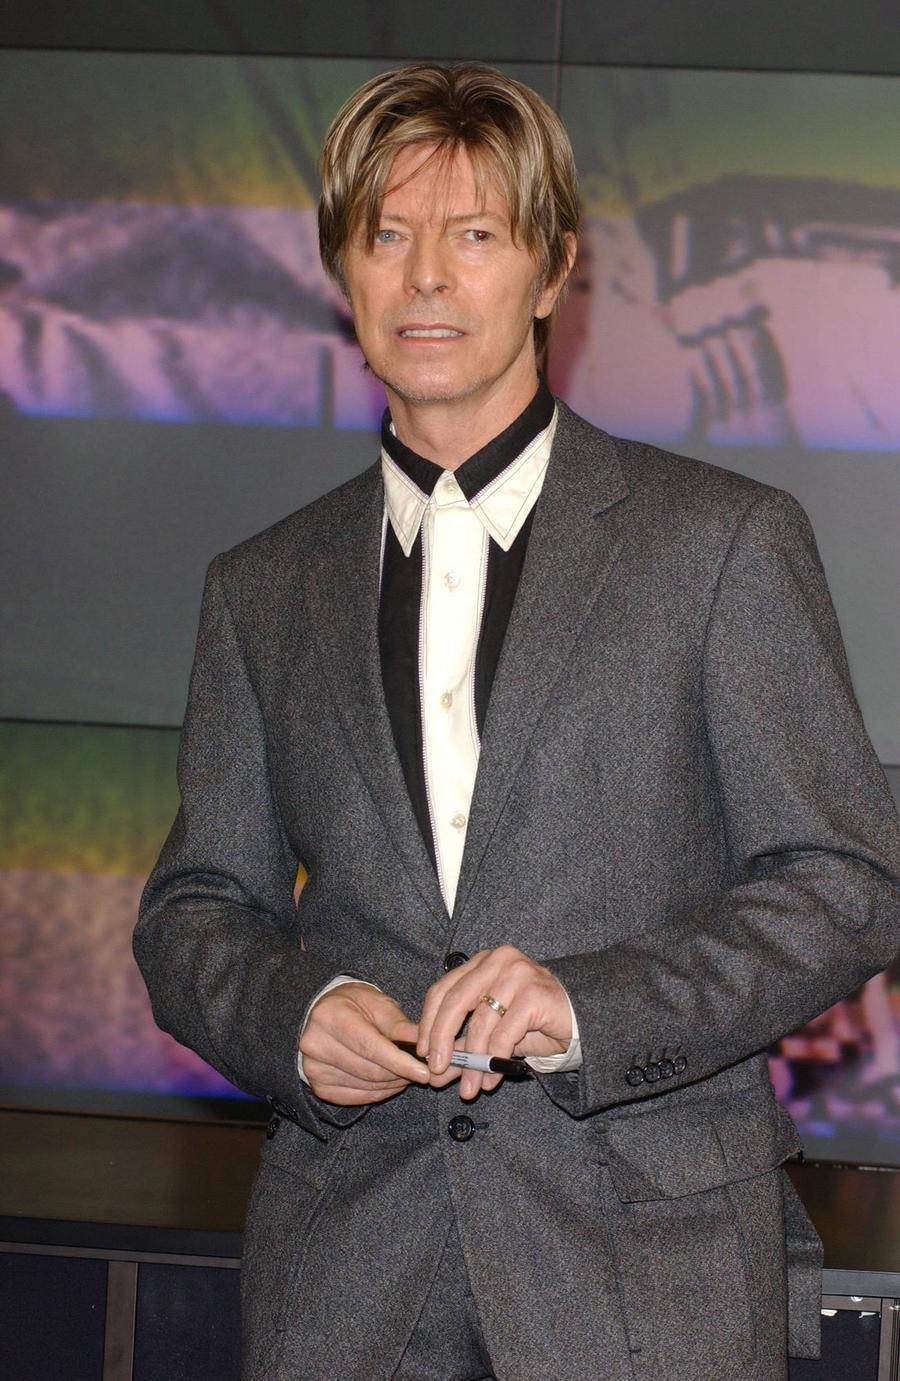 David Bowie Album To Compete For Mercury Music Prize